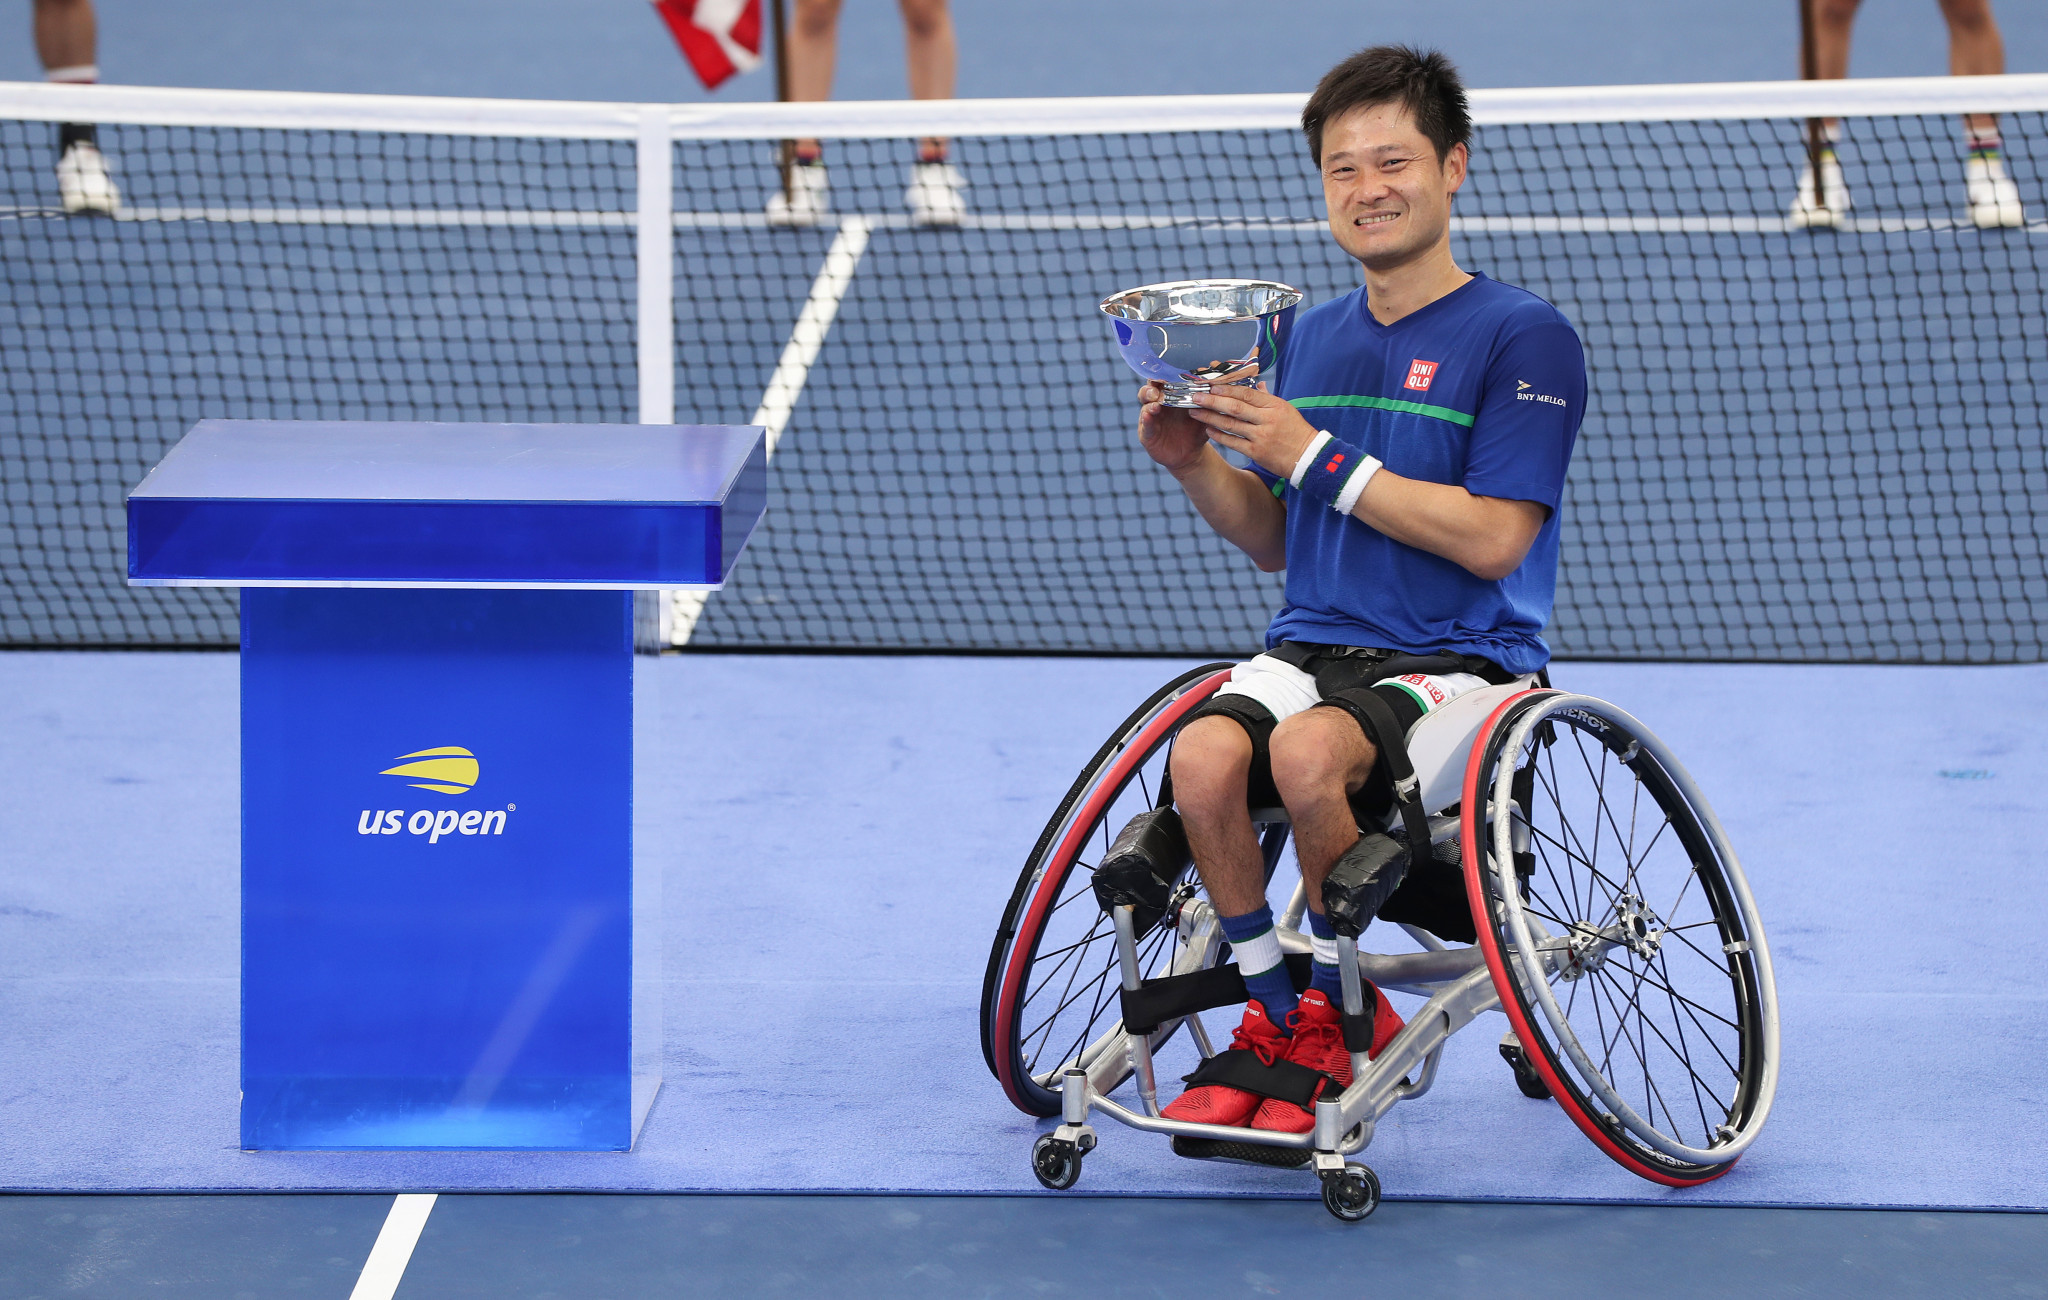 Japan's Shingo Kunieda won his sixth US Open title after defeating Britain's Alfie Hewett in three sets ©Getty Images